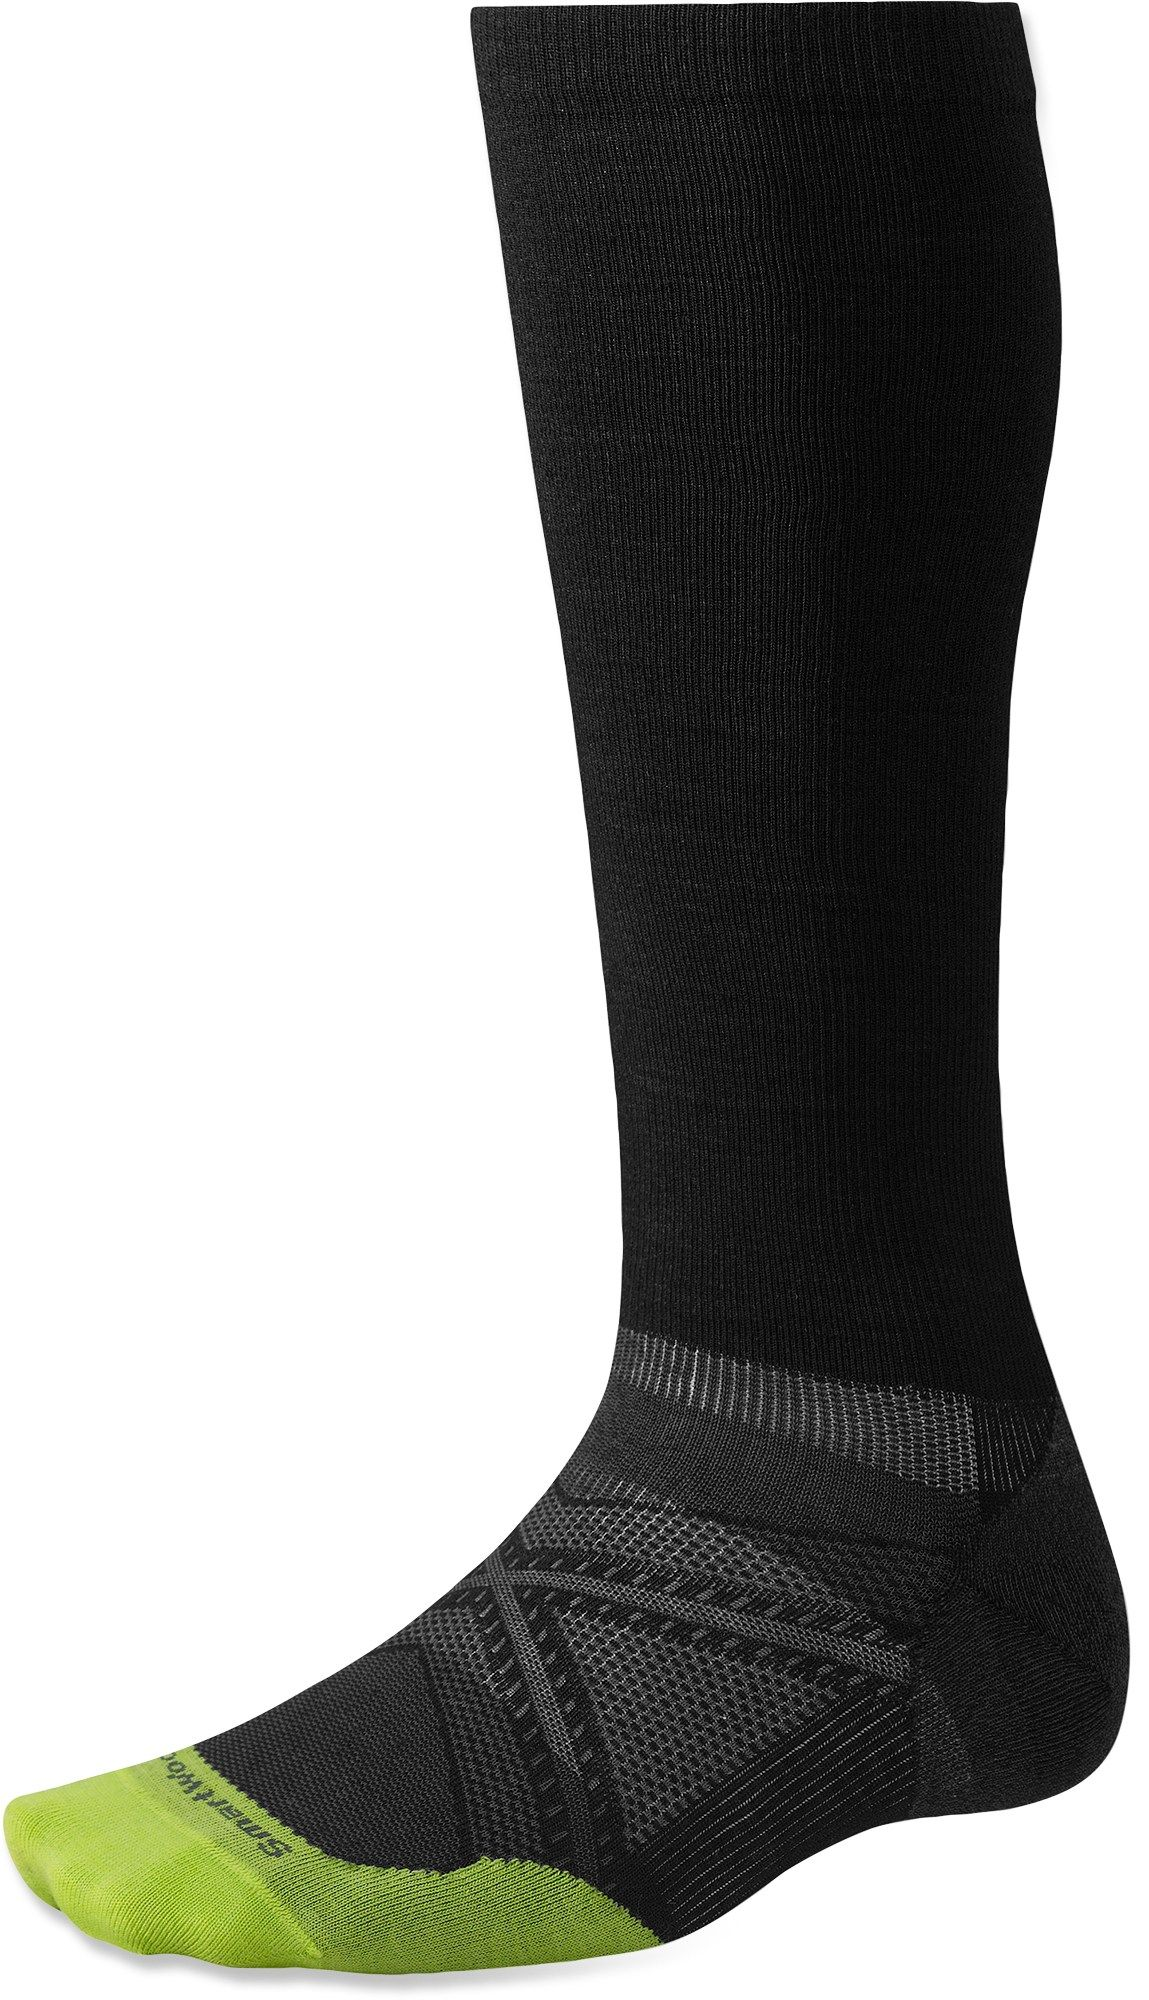 fc8ca8644a662 Performance-enhancing merino wool and recovery-enhancing compression  combine with smart features like the